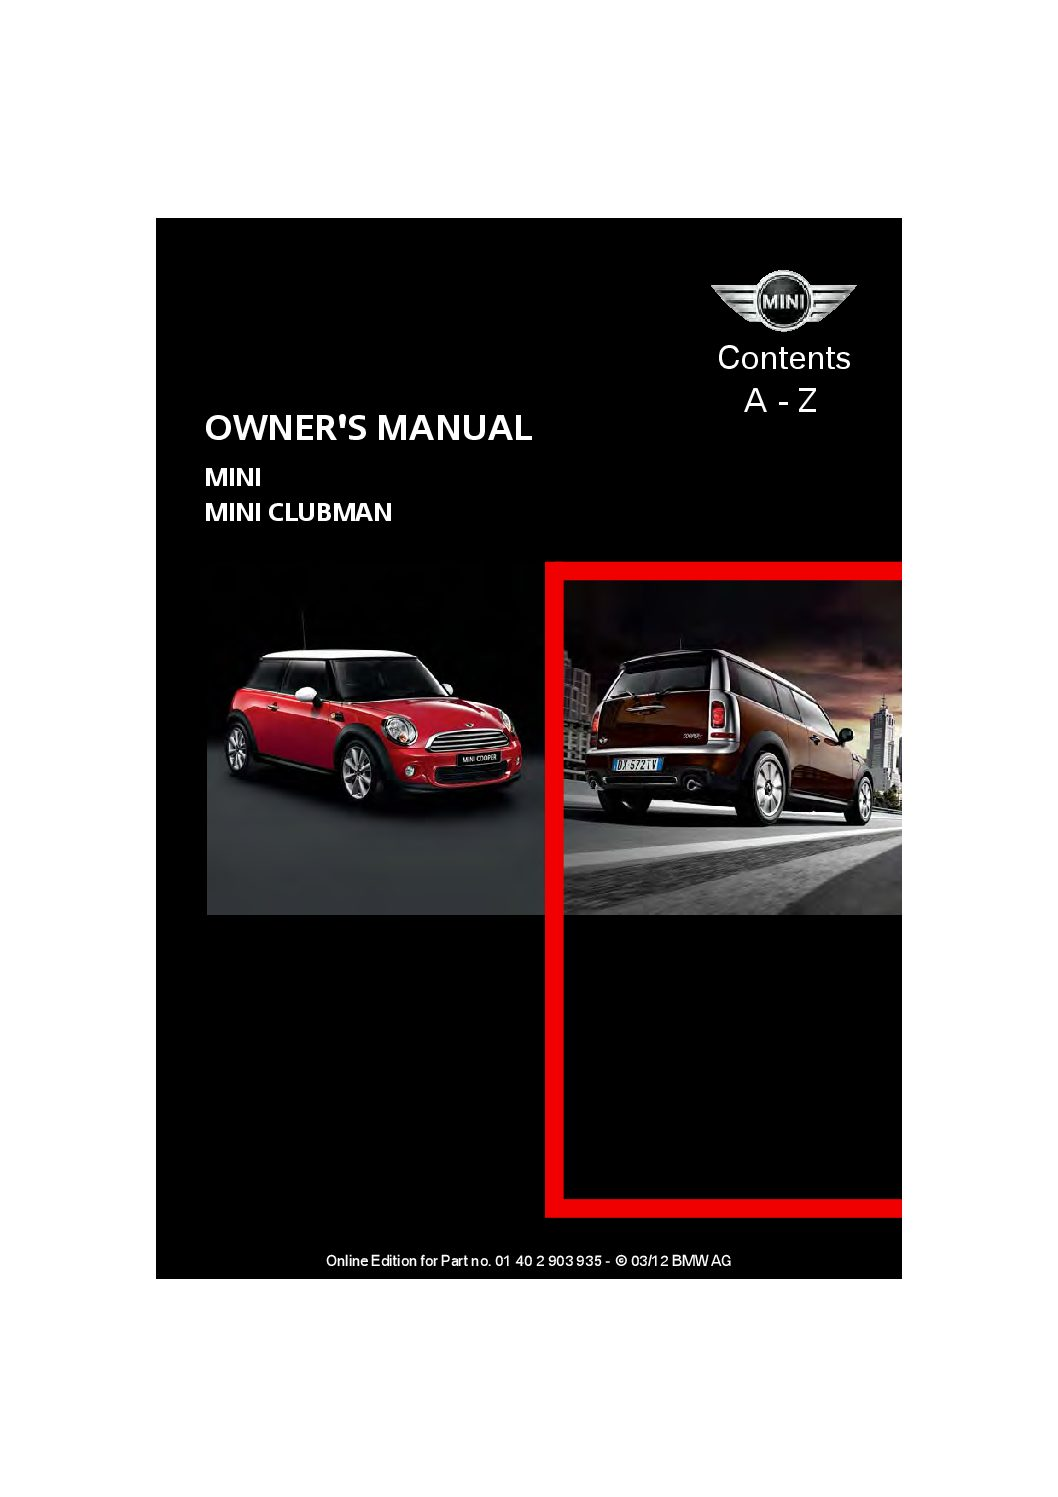 service manual online repair manual for a 2012 mini. Black Bedroom Furniture Sets. Home Design Ideas